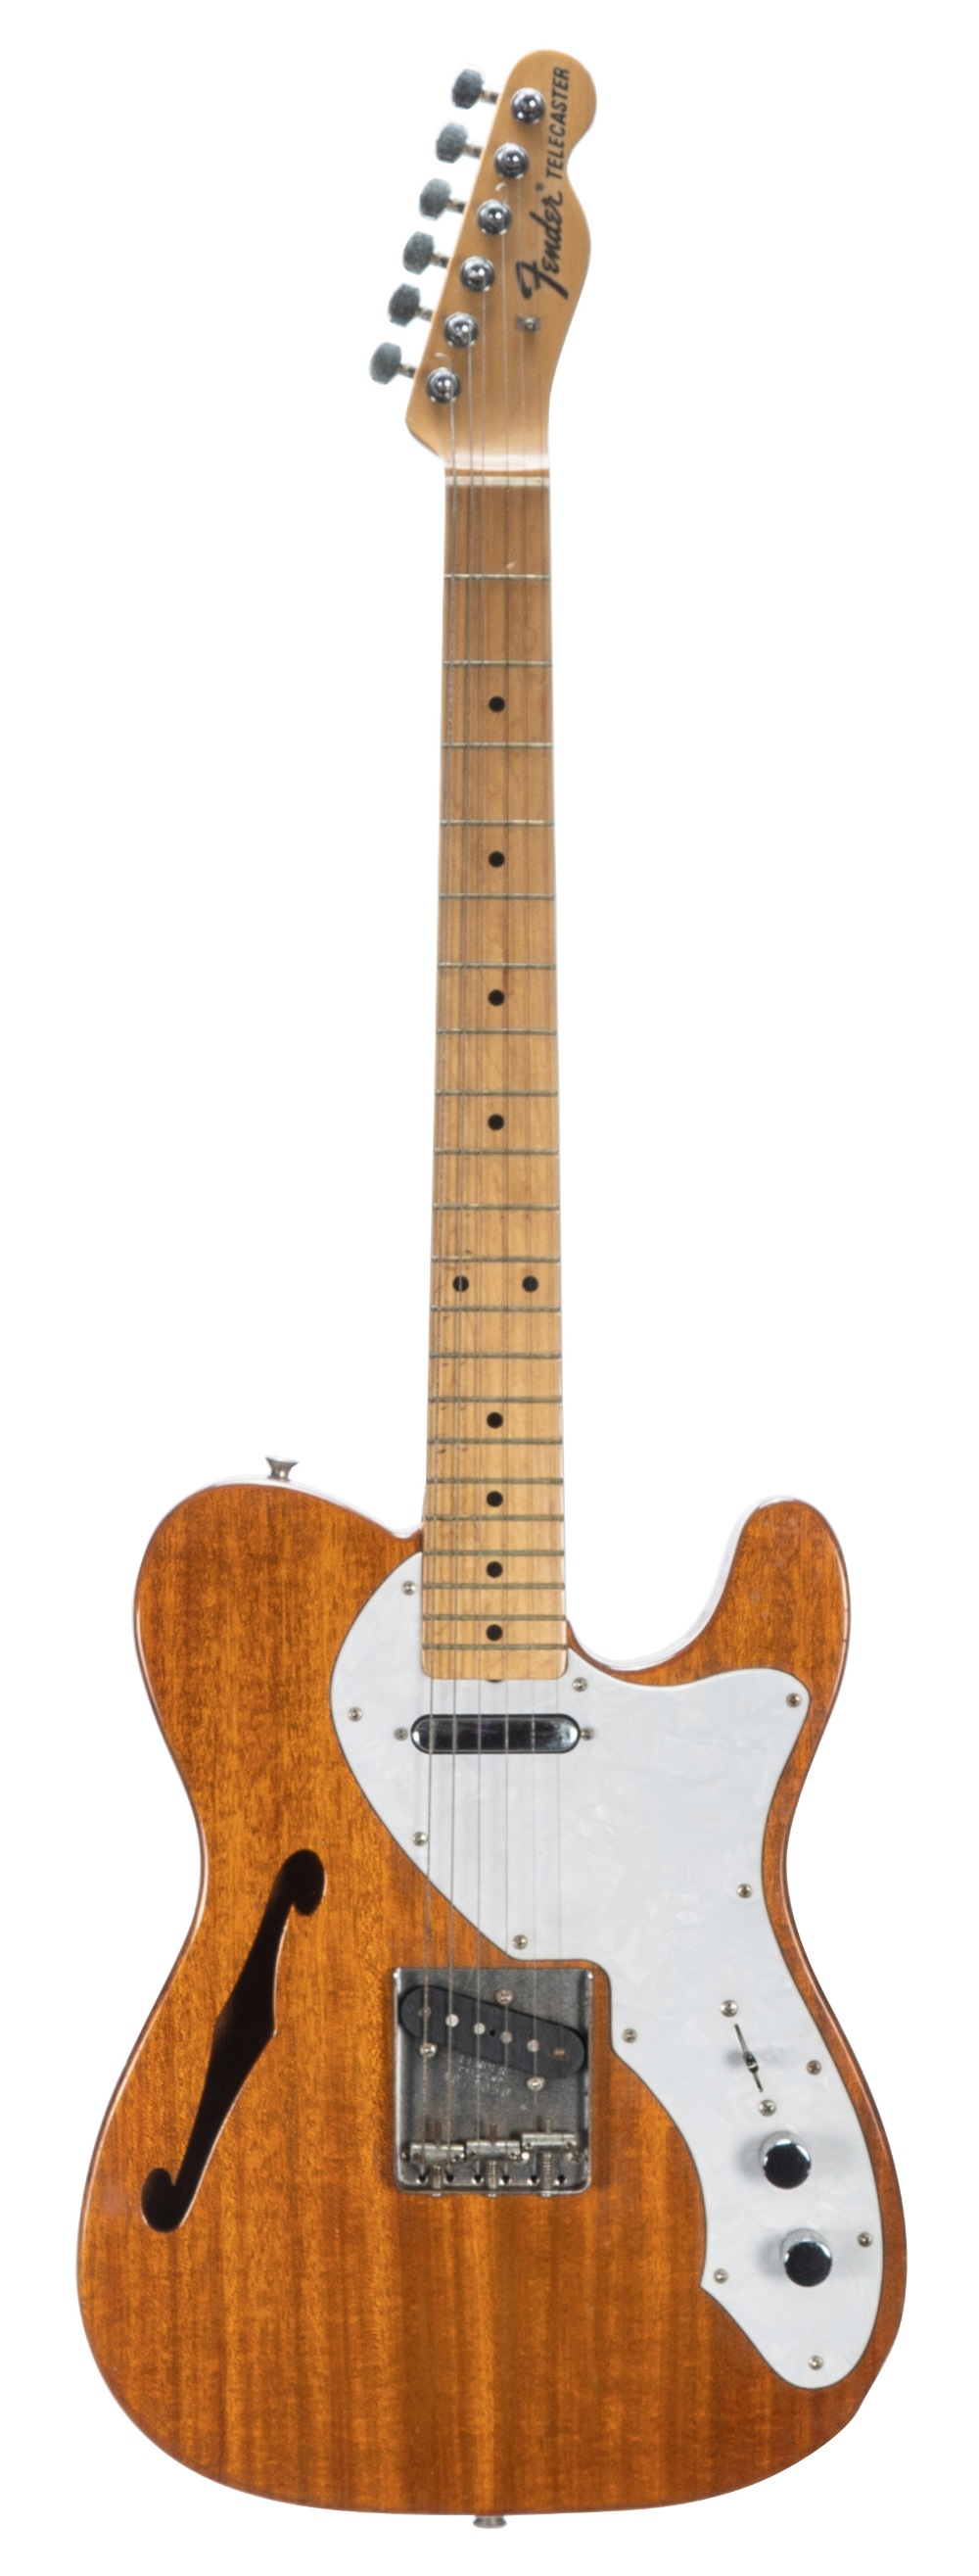 1980s Fender '68 Thinline Telecaster electric guitar, made in Japan, ser. no. A0xxxx0; Finish: